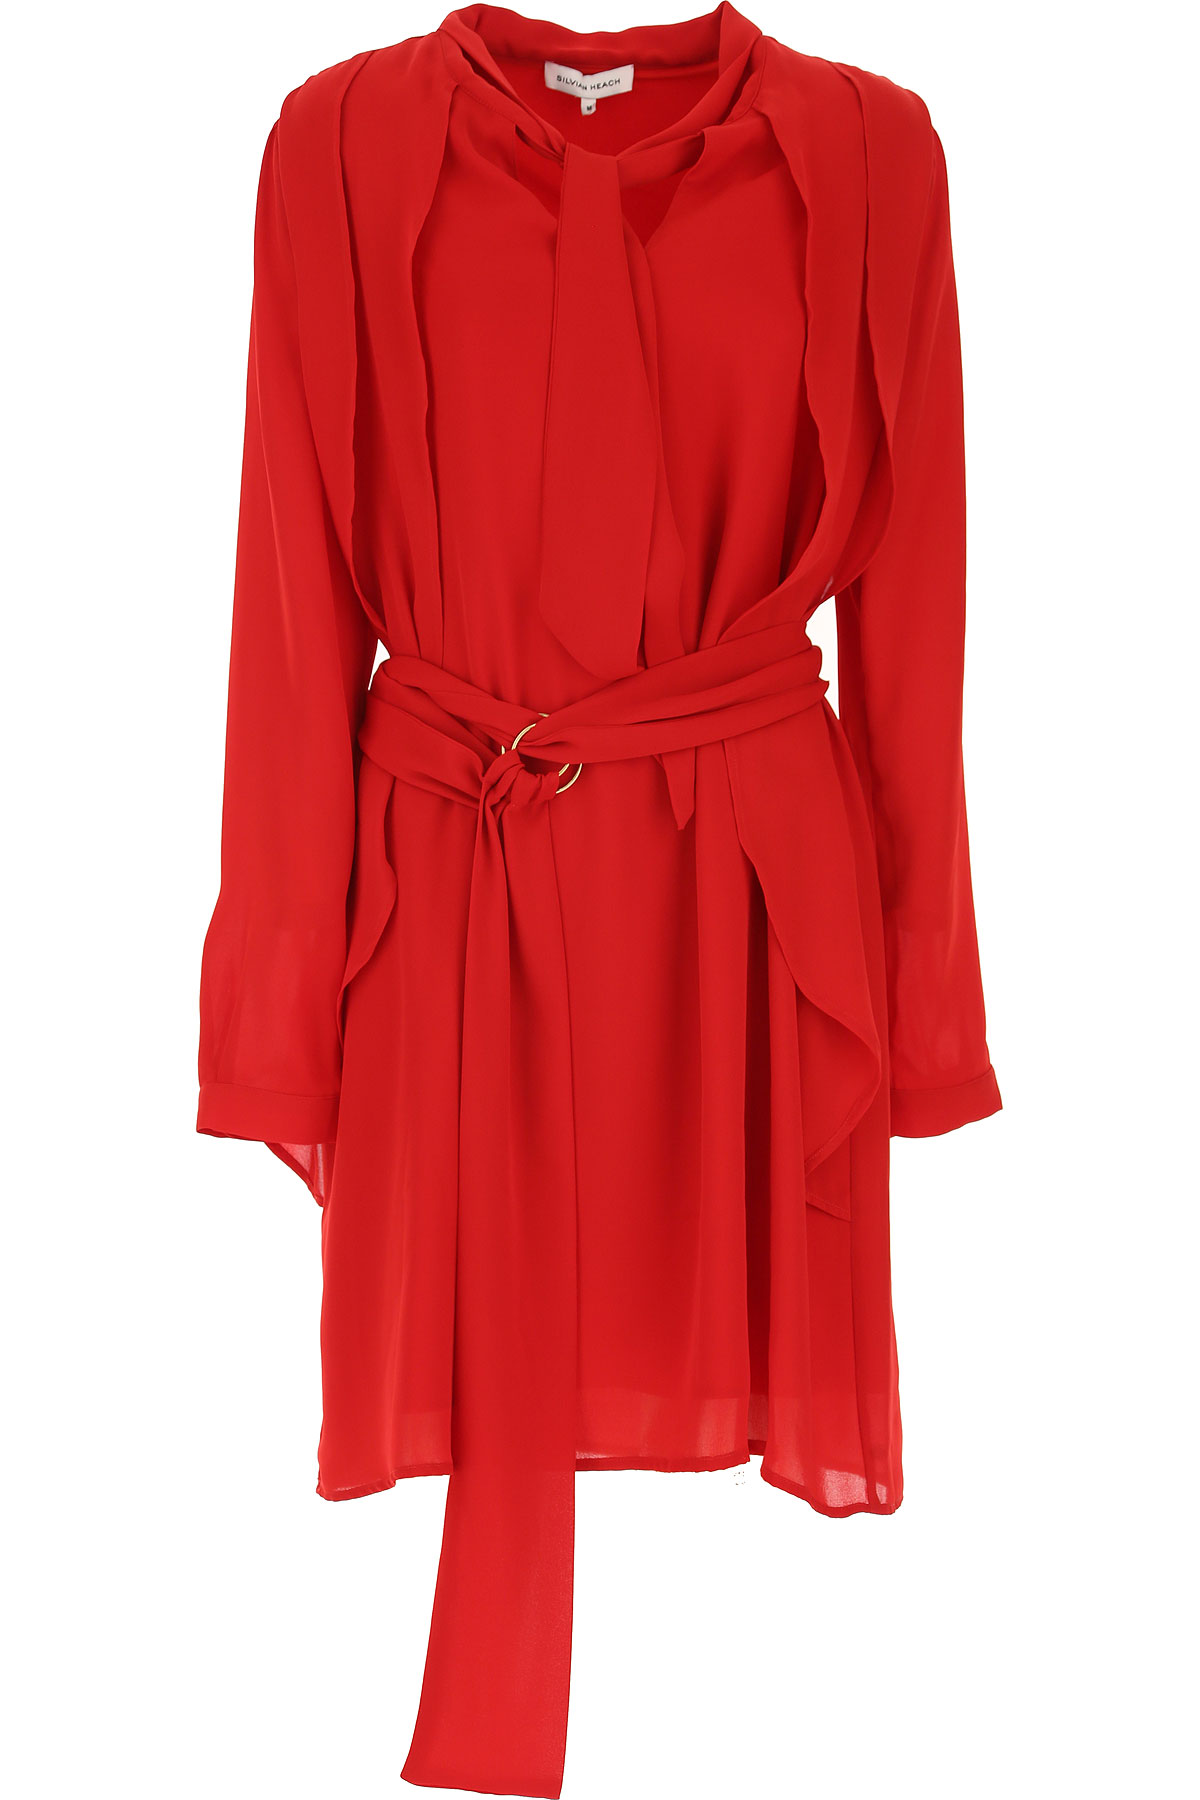 Image of Silvian Heach Dress for Women, Evening Cocktail Party, Red, polyester, 2017, 10 4 6 8